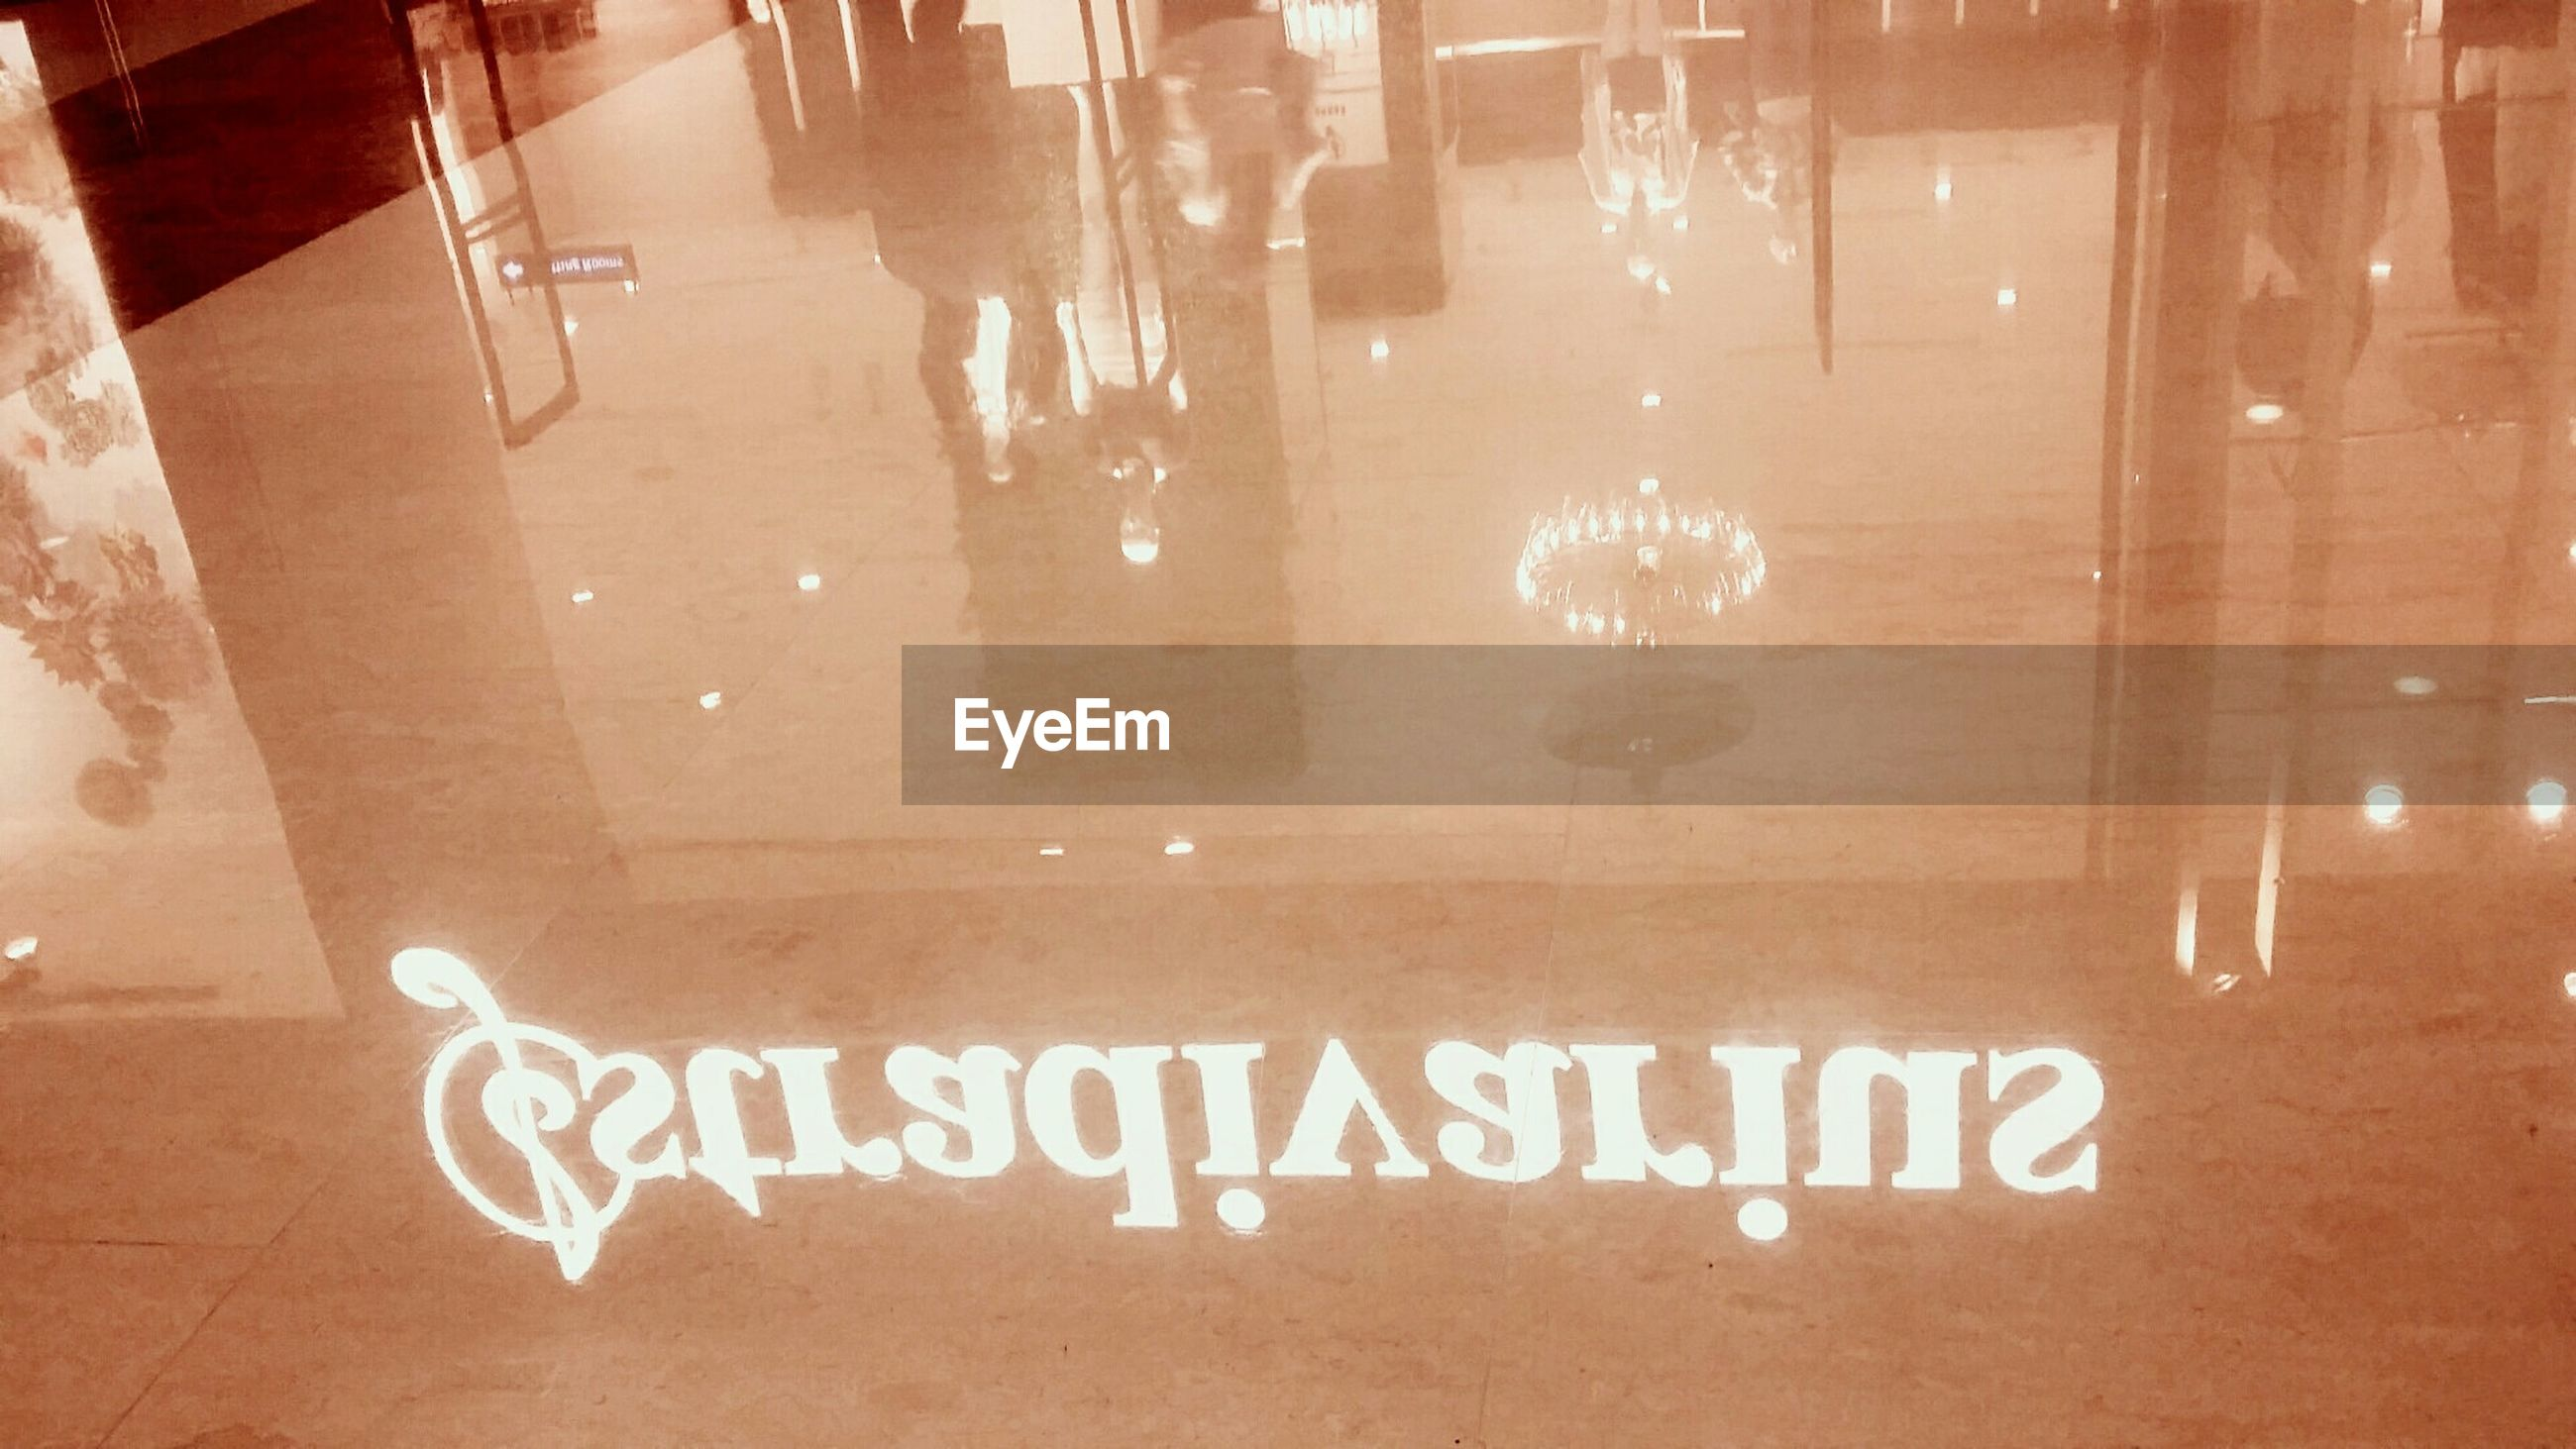 indoors, glass - material, reflection, transparent, flooring, window, water, tiled floor, text, built structure, wet, wall - building feature, communication, architecture, western script, tile, empty, illuminated, high angle view, no people